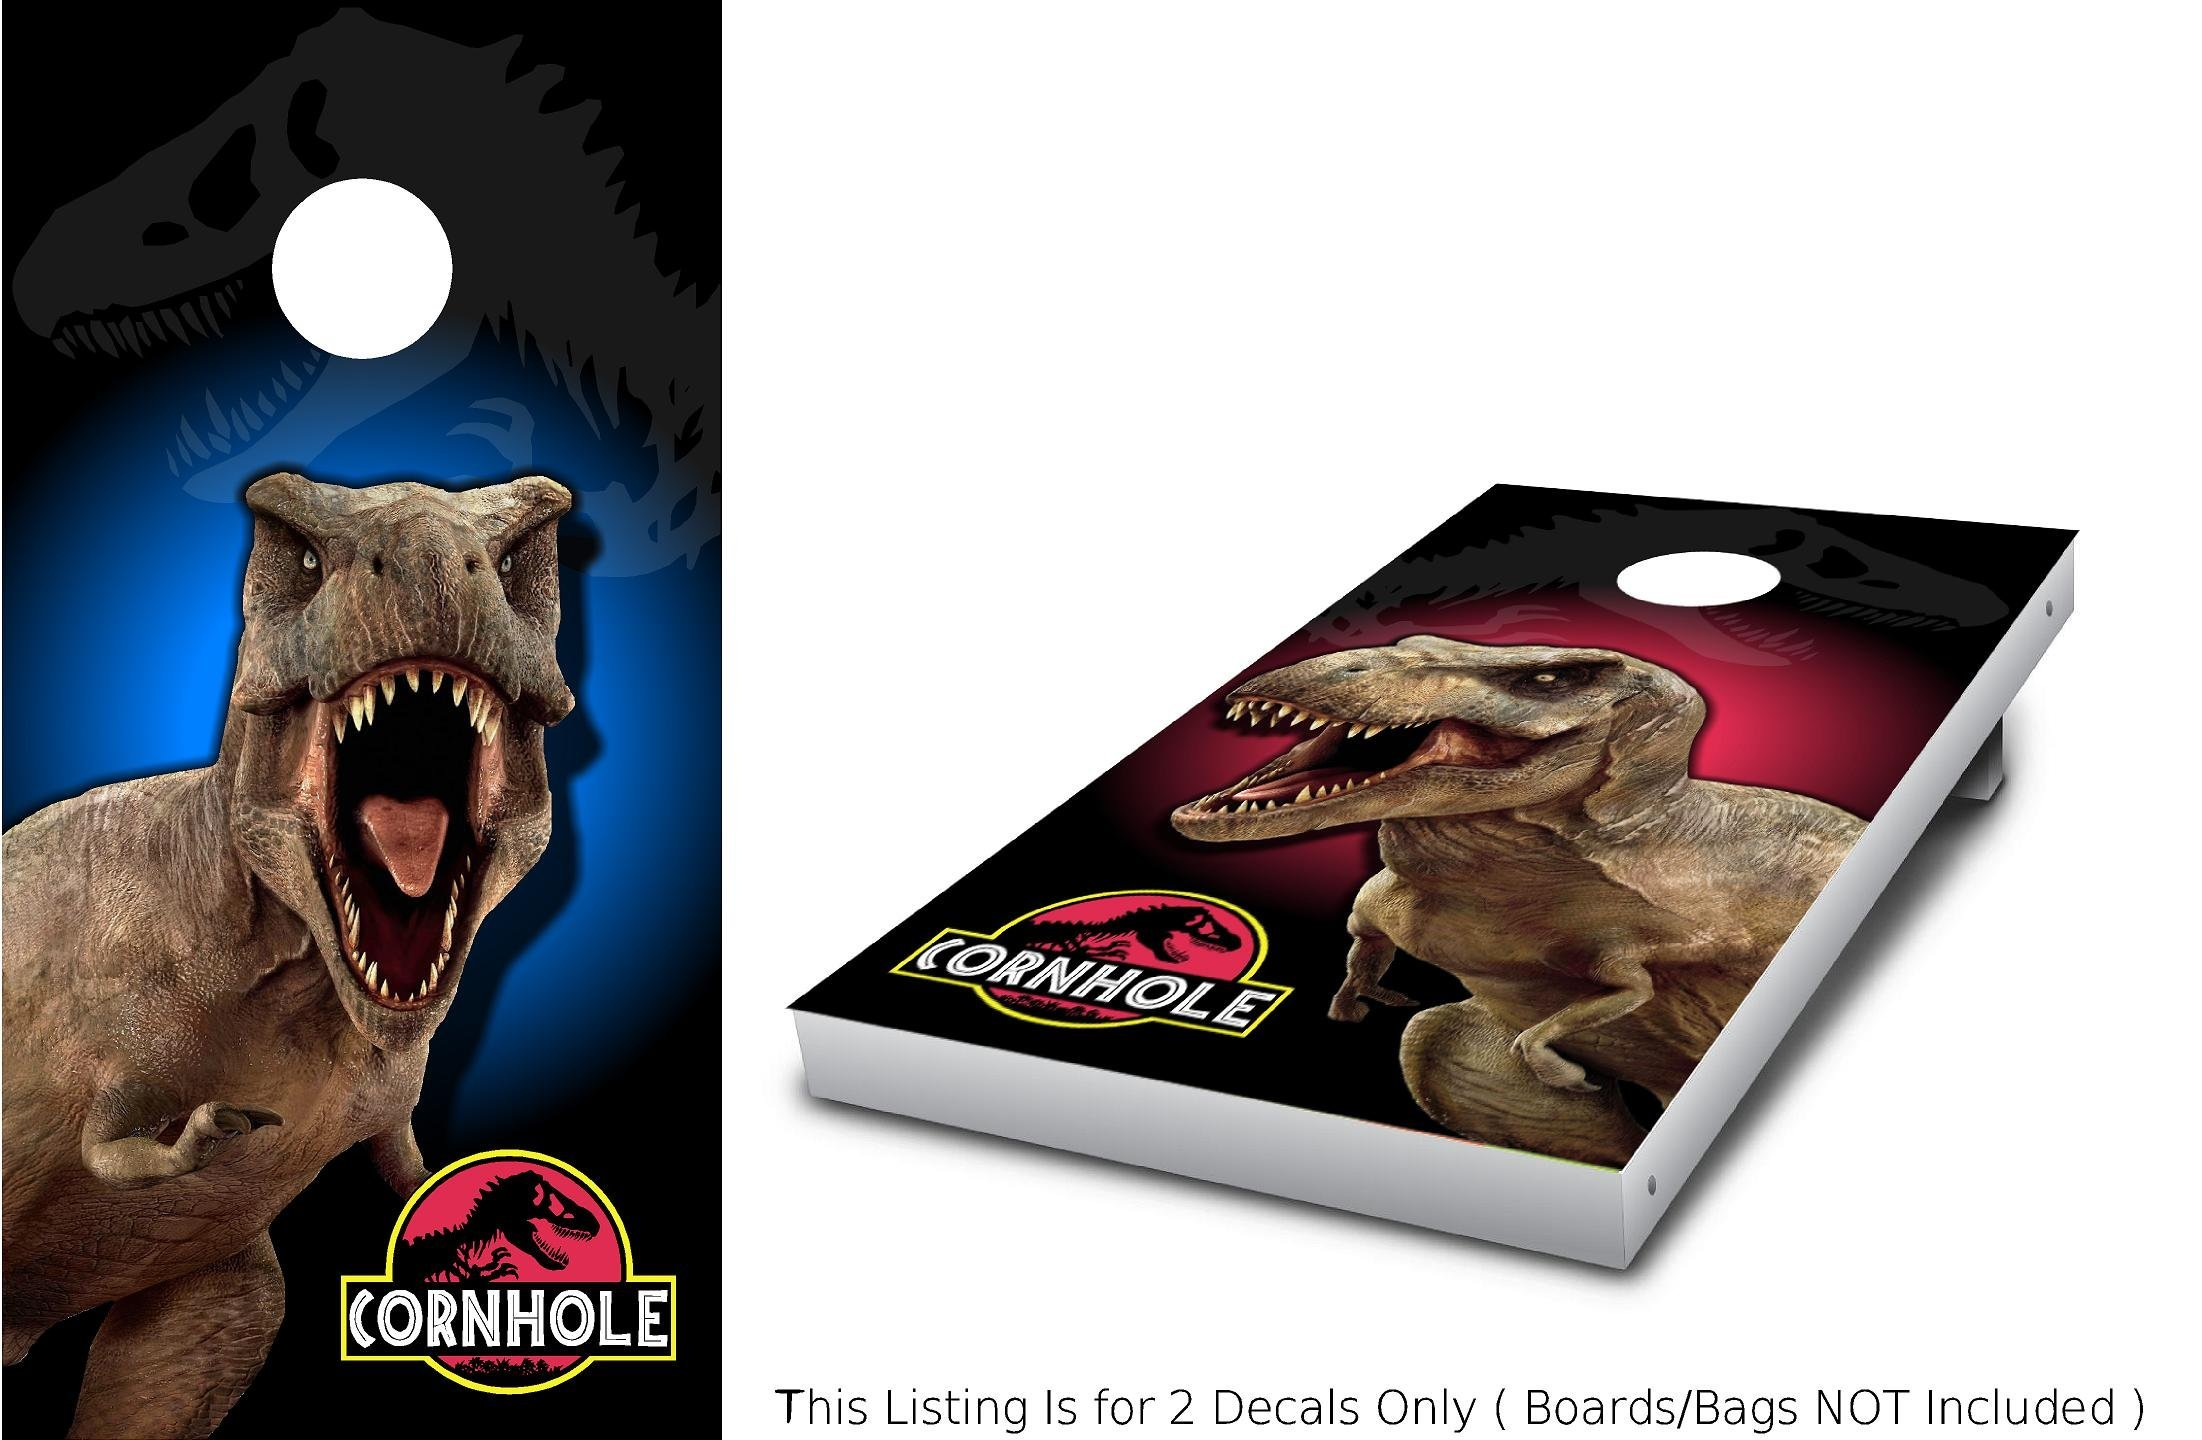 Stickit Graphix T-REX Corn Hole Wrap Set! 2X Decals (24'' x 48'') Jurassic Dinosaur World Red vs Blue Graphics for Cornhole baggo Bag Toss Boards Game